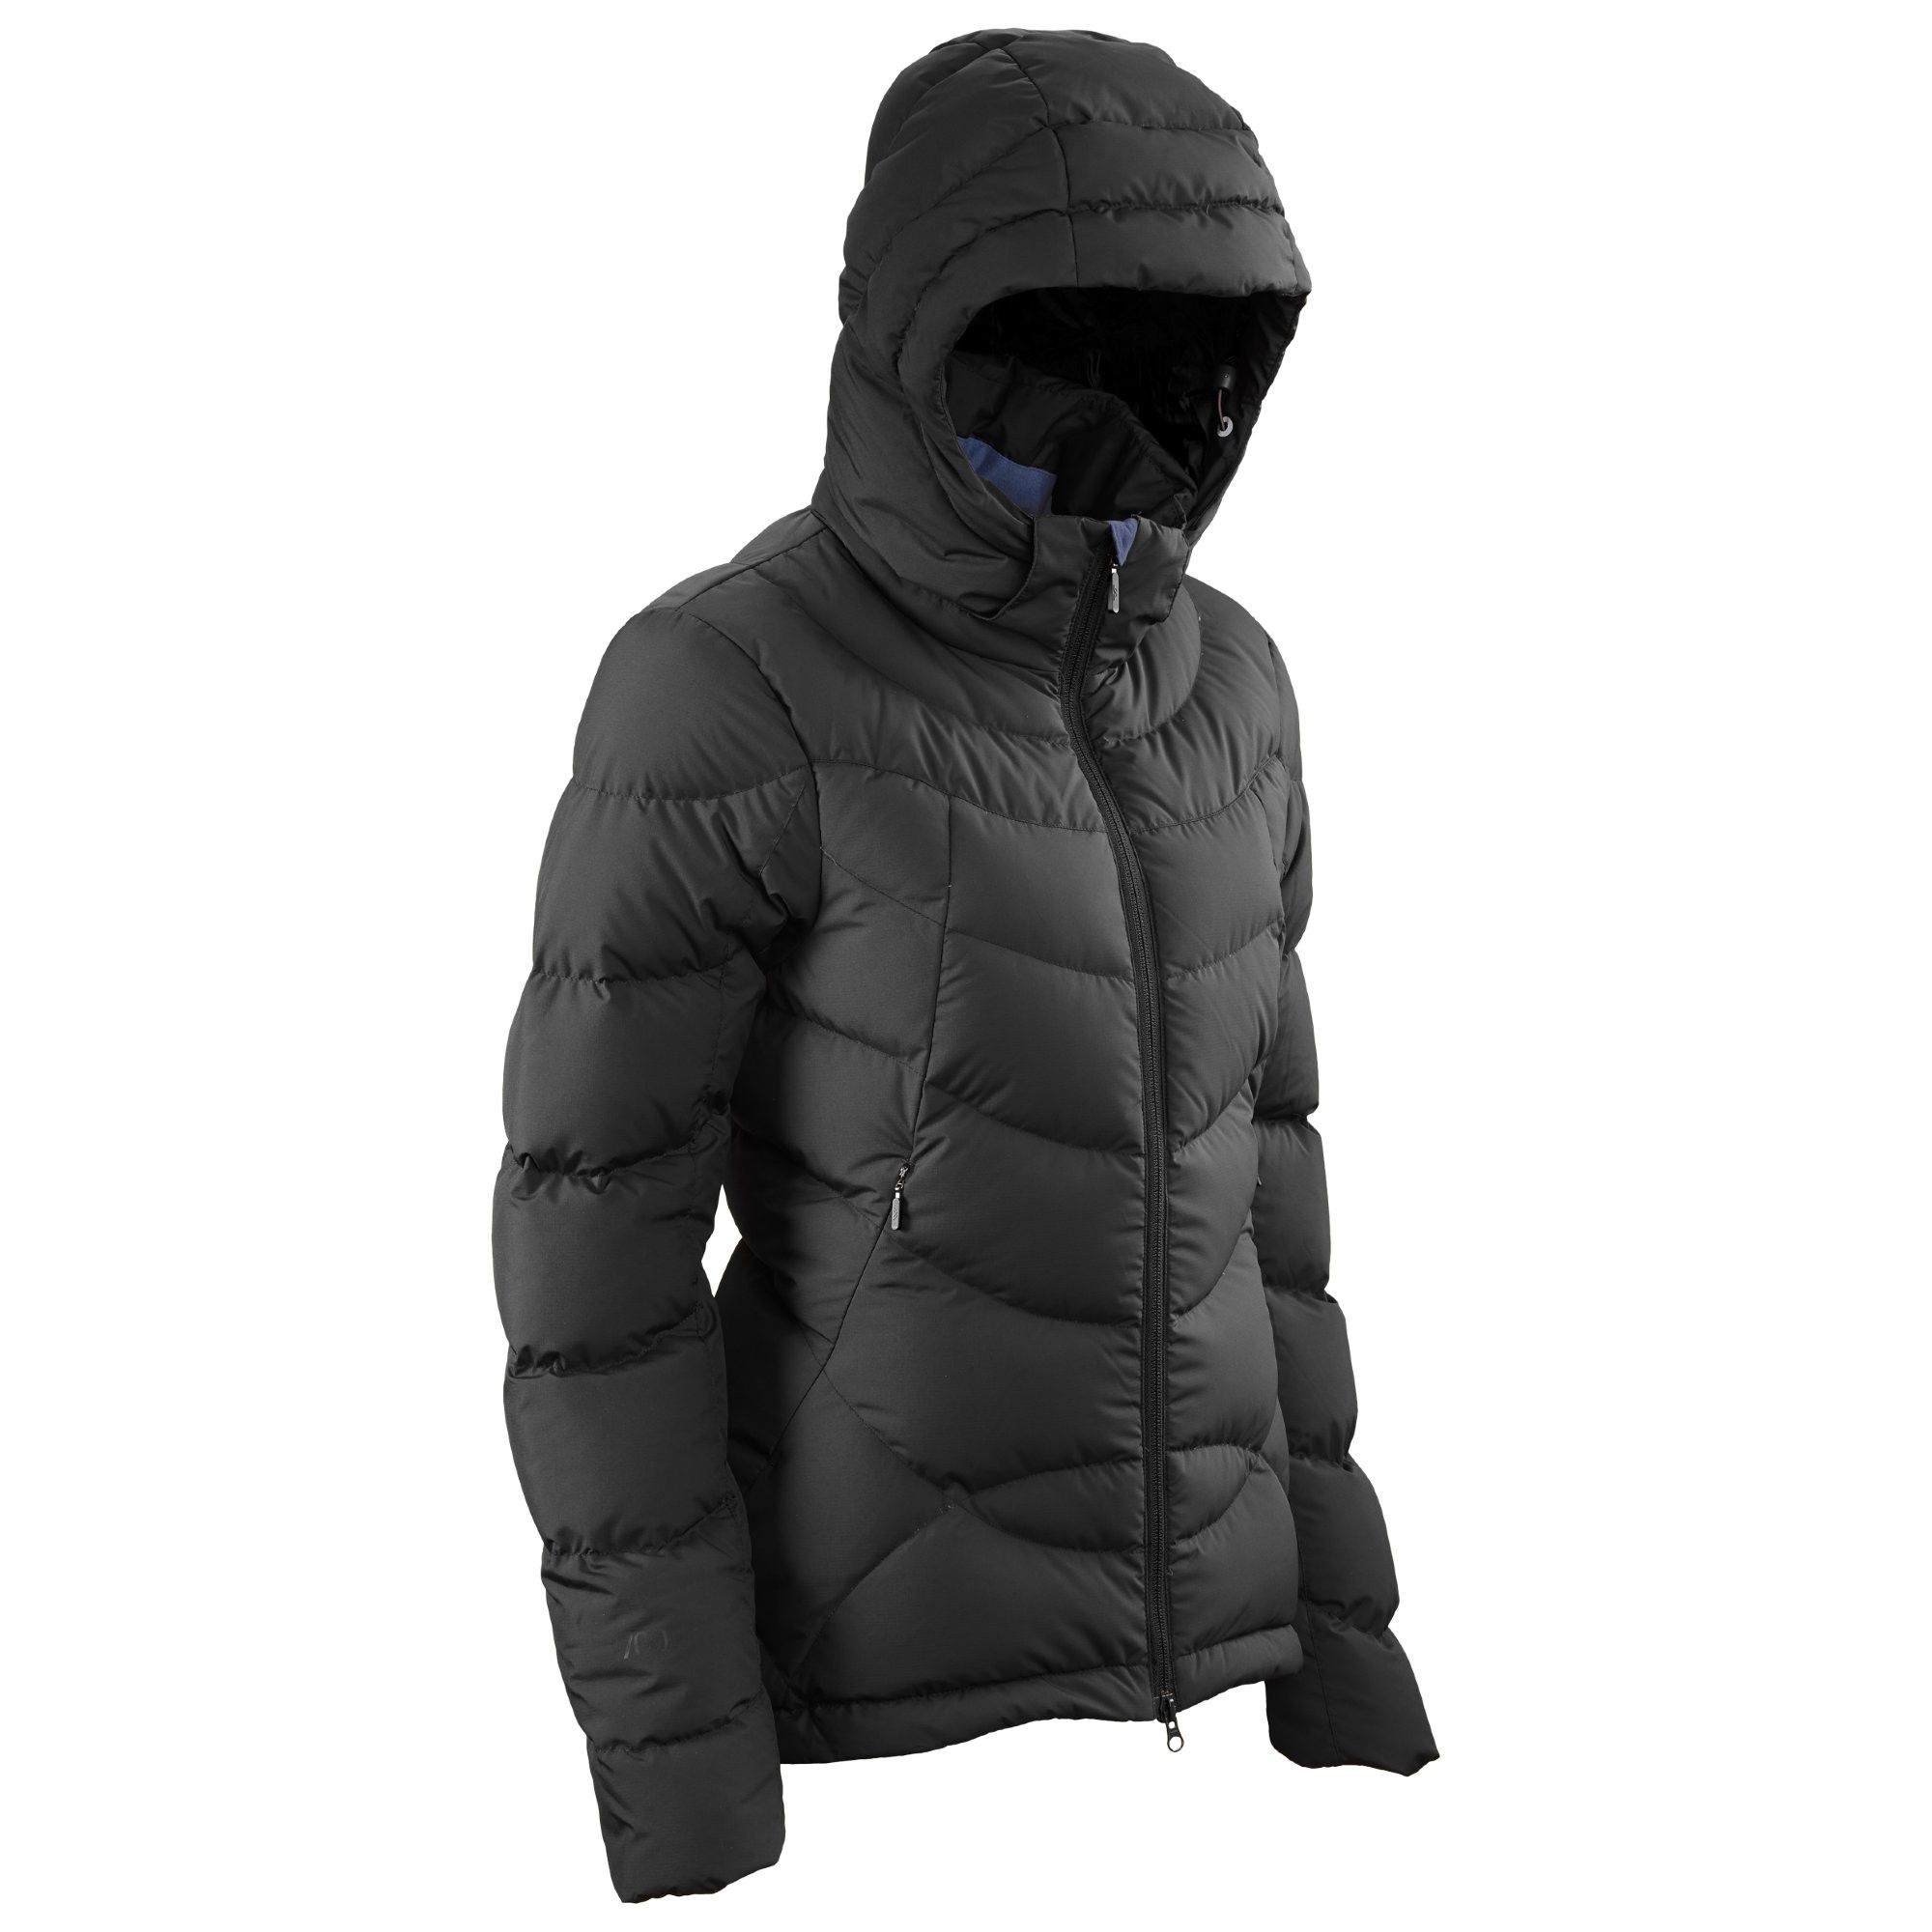 Buy Goose Down Women's Hooded Jacket v4 - Black online at ...